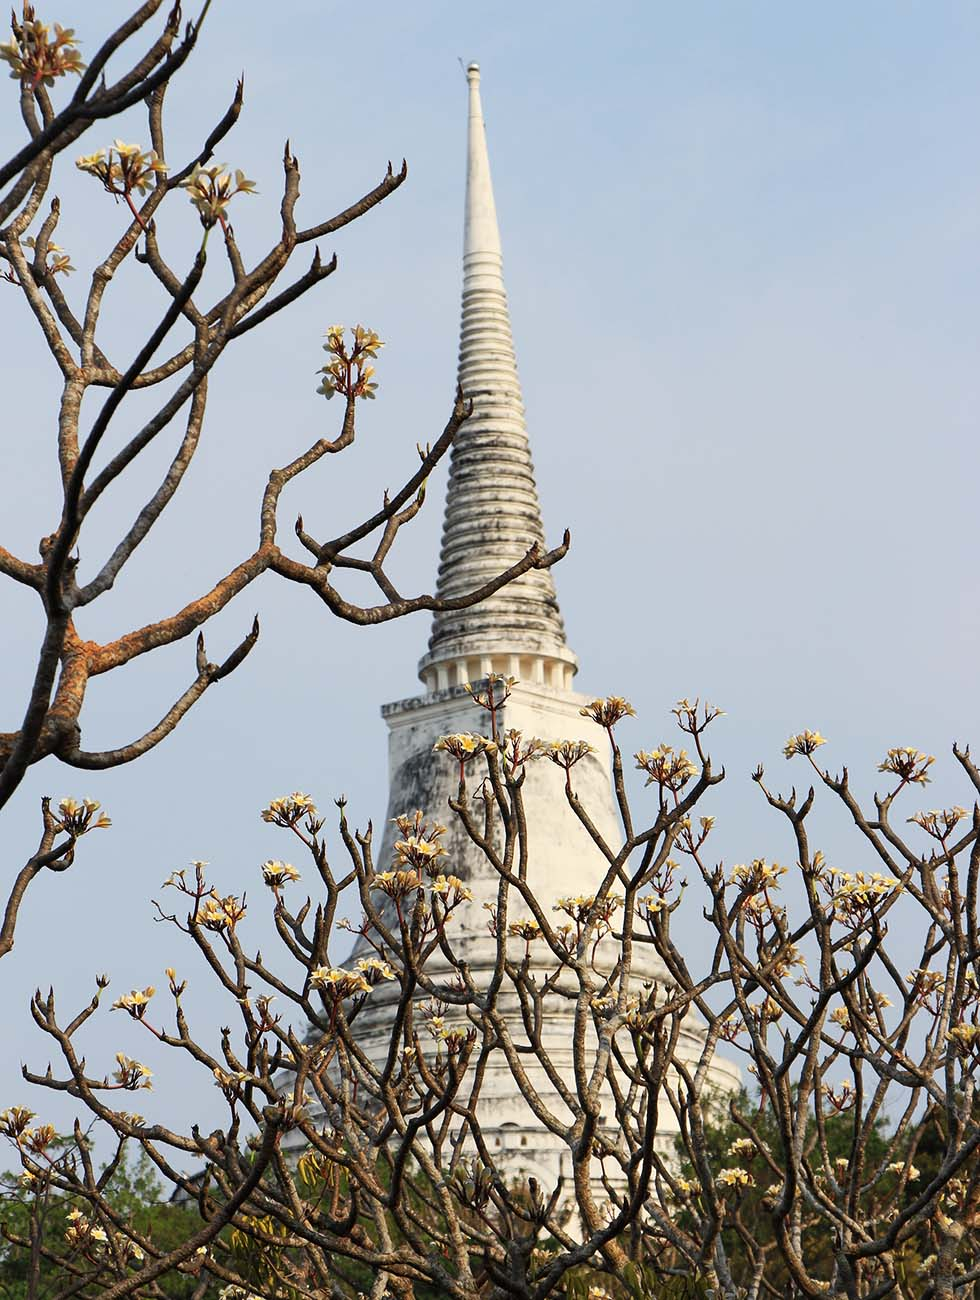 The White Tower in Phetchaburi